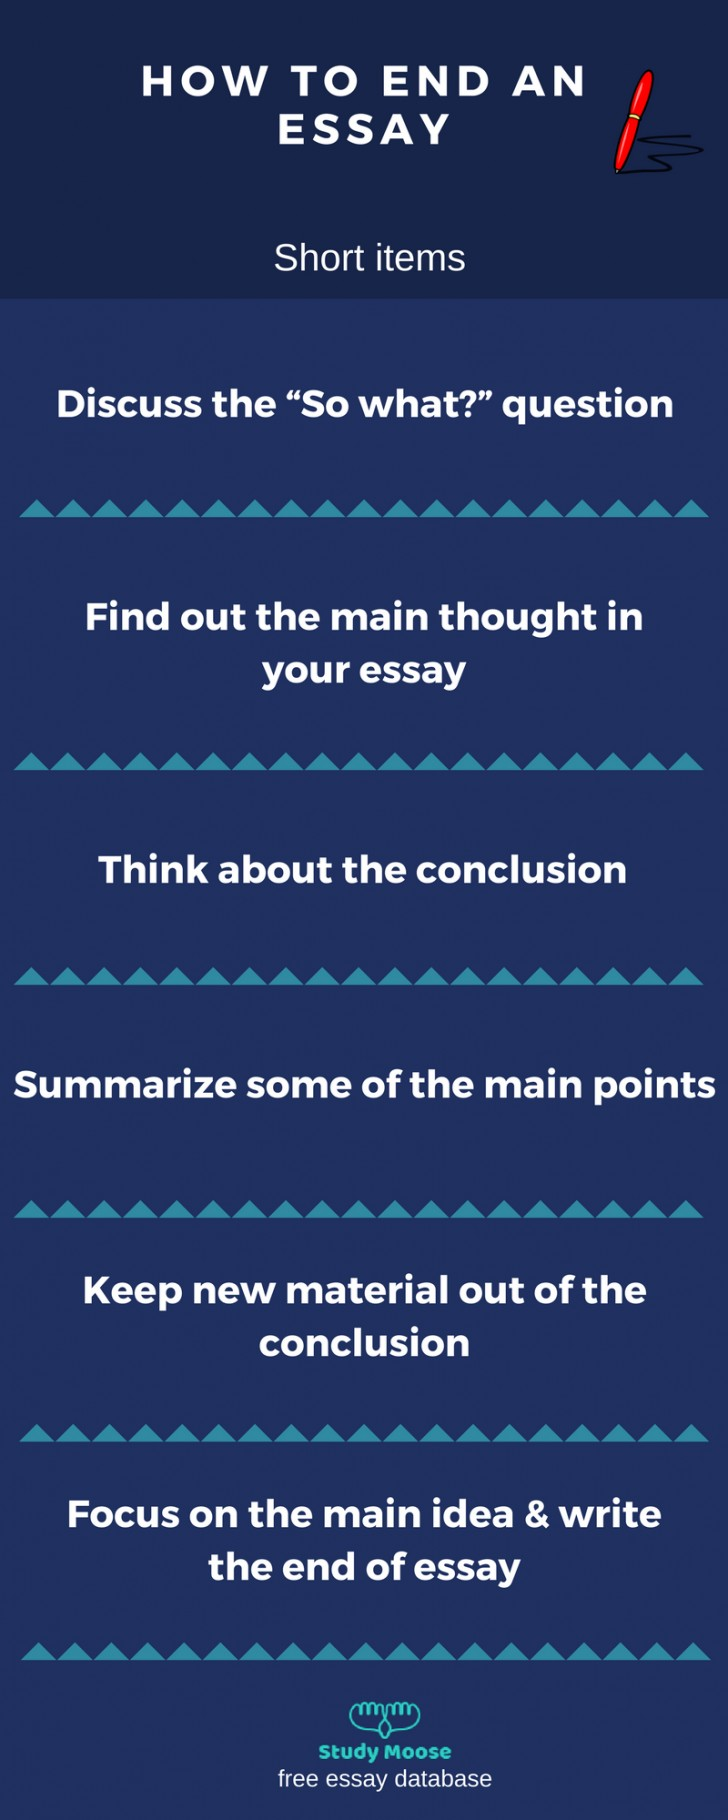 003 Essay Example Good Ways To End An Outstanding Best Way Argumentative How Opinion 728